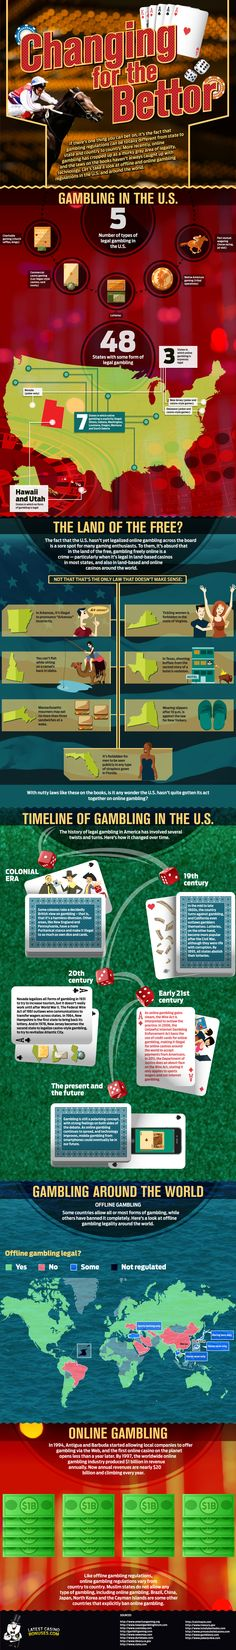 Gambling in the Us and around the world.